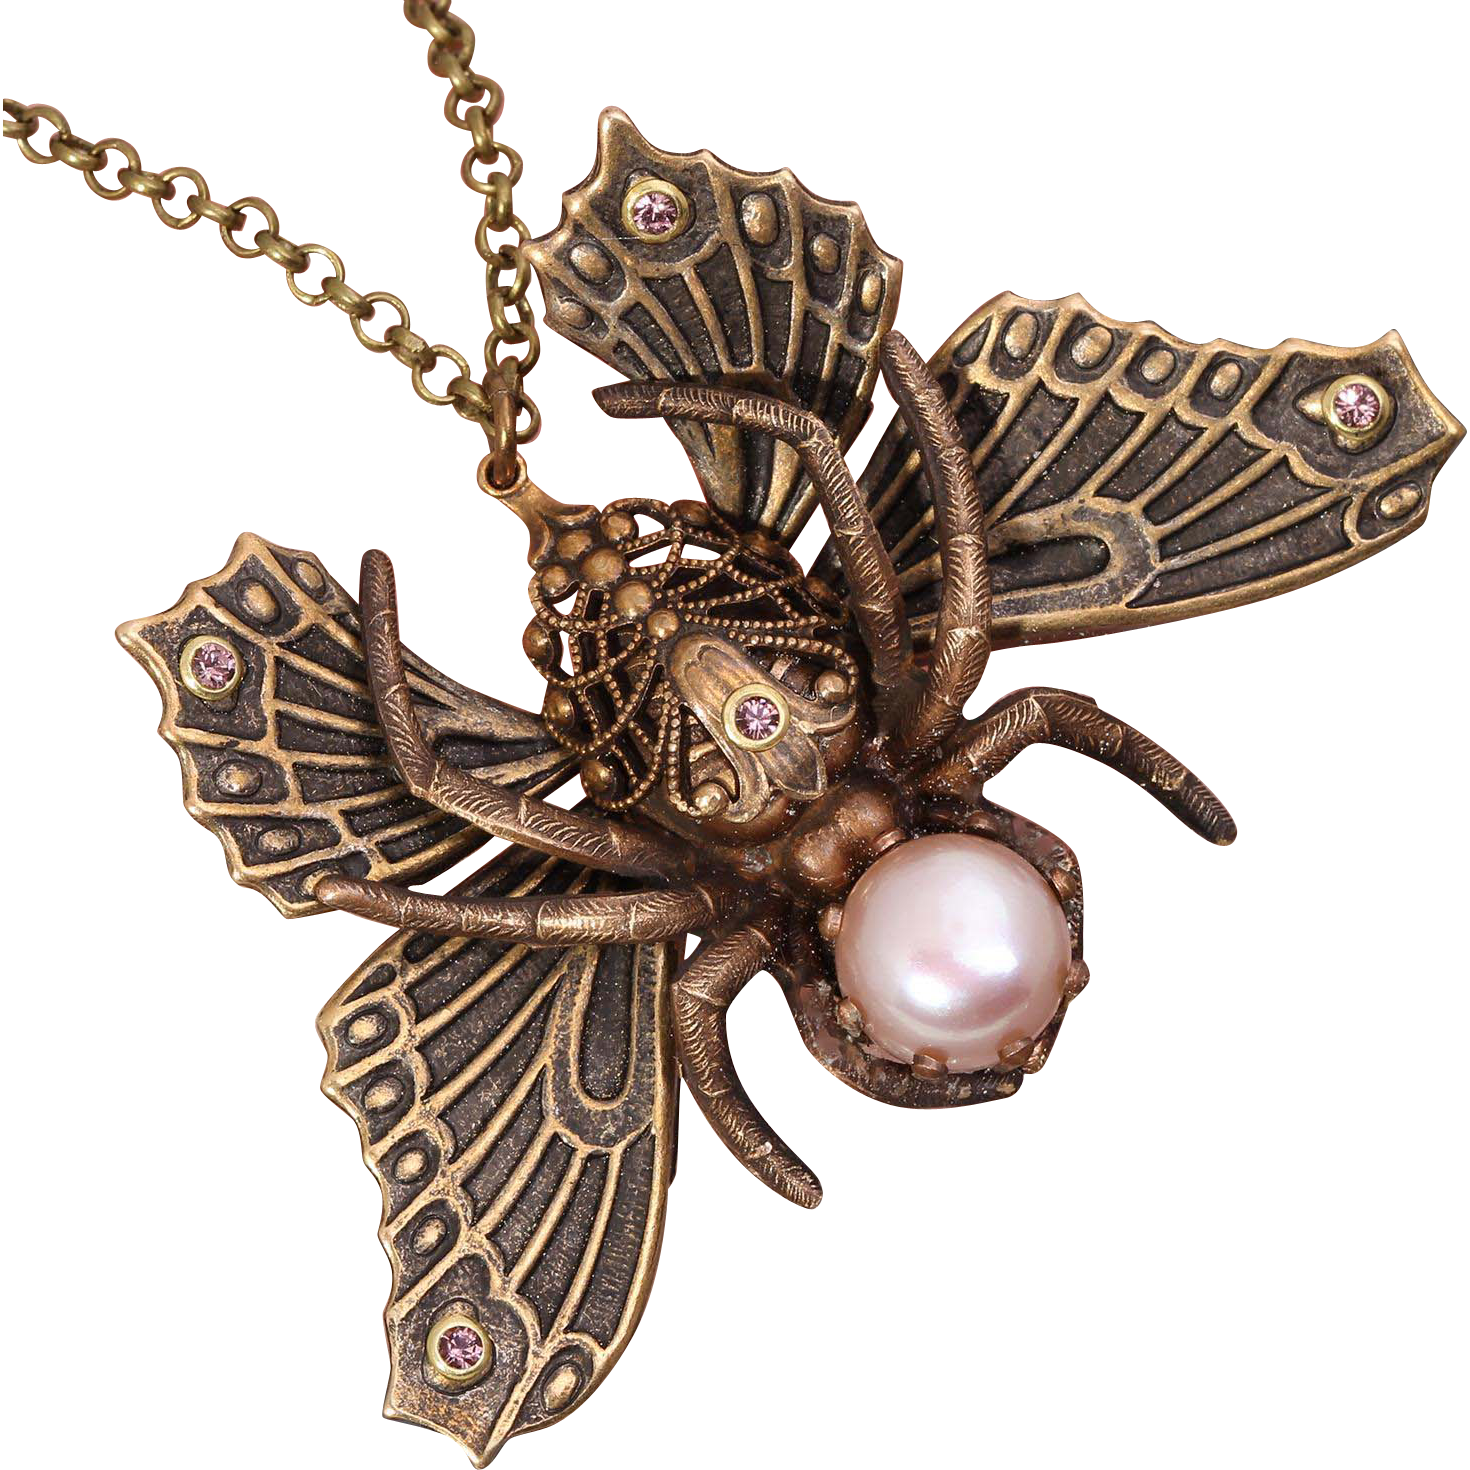 Spider Necklace Butterfly Necklace Moth Spider Necklace Cabinet of Curiosities Art Nouveau Style